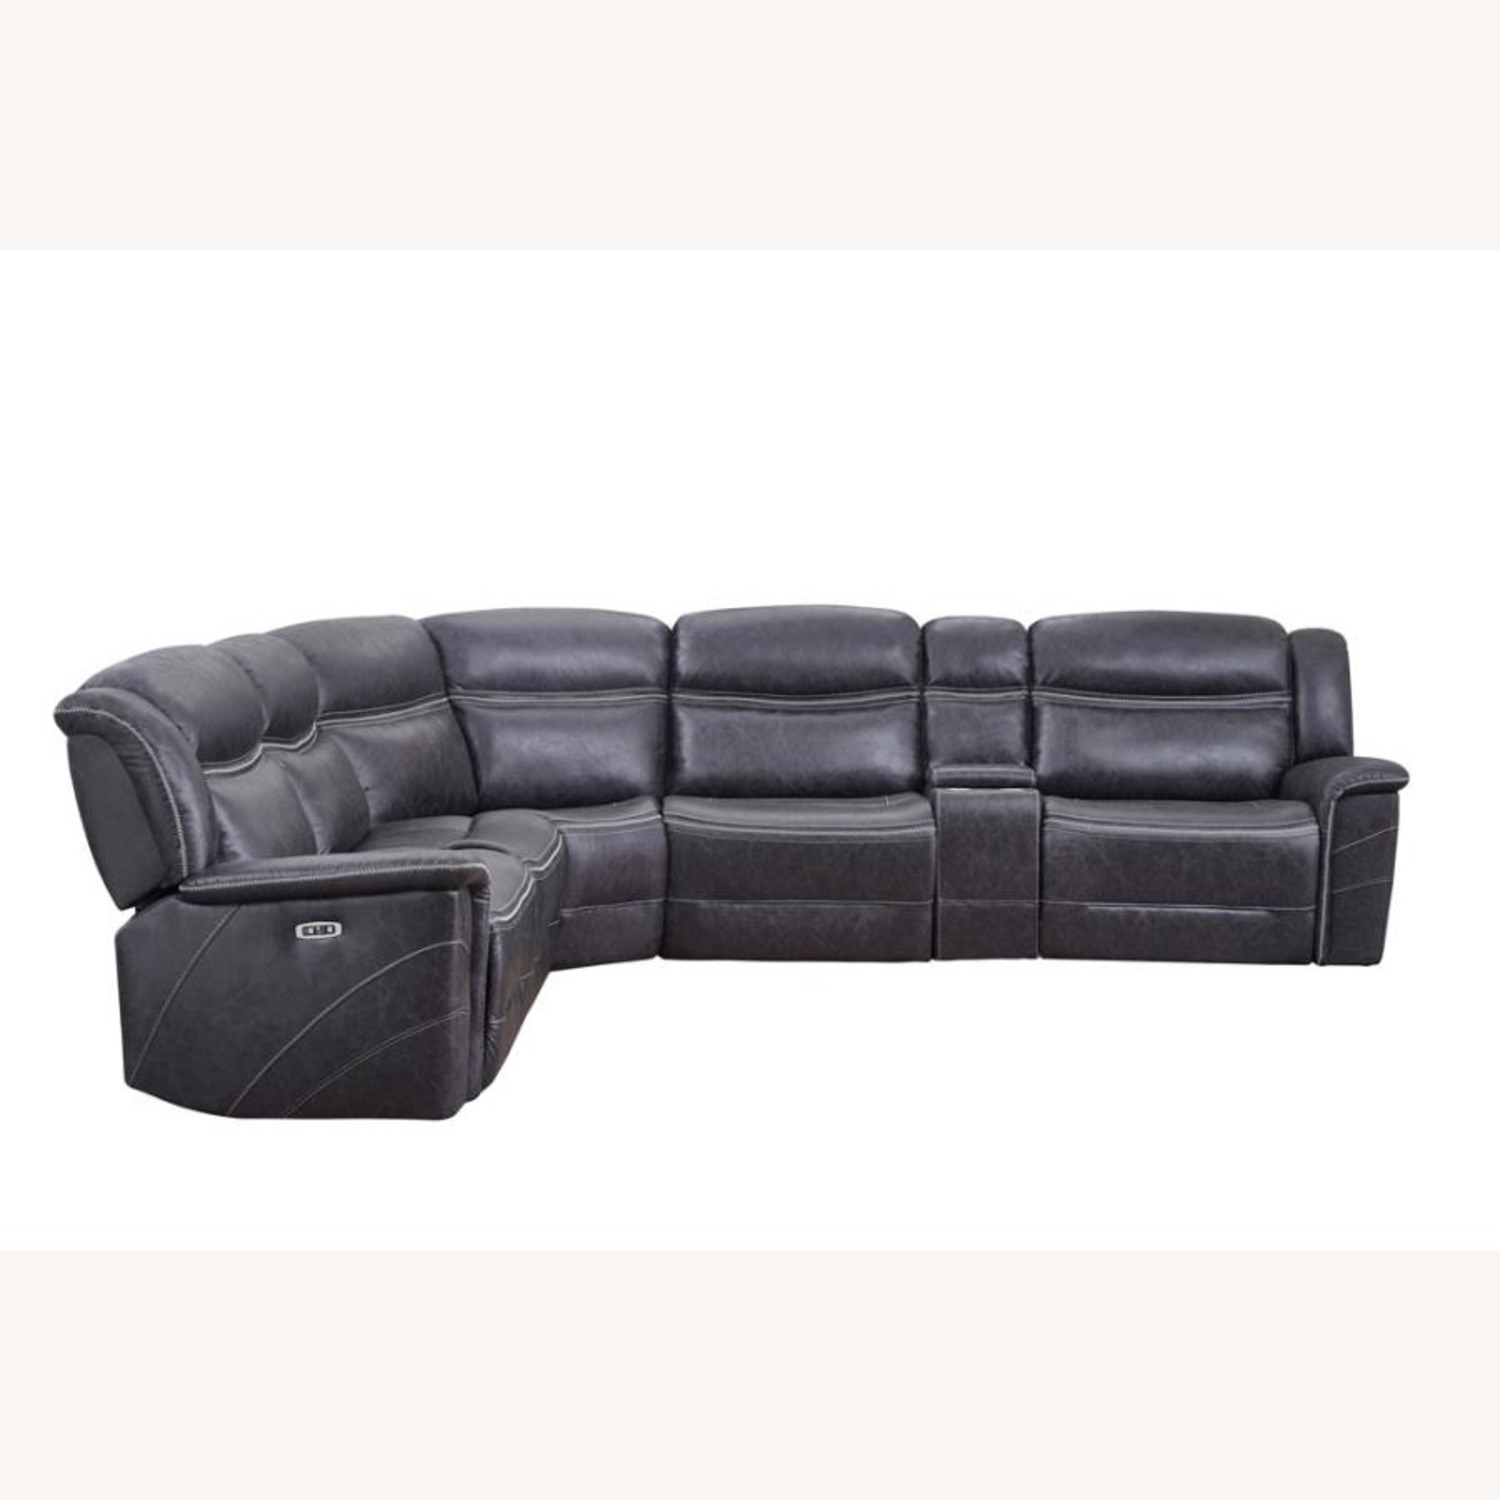 6-Piece Motion Sectional In Charcoal Faux Suede - image-0